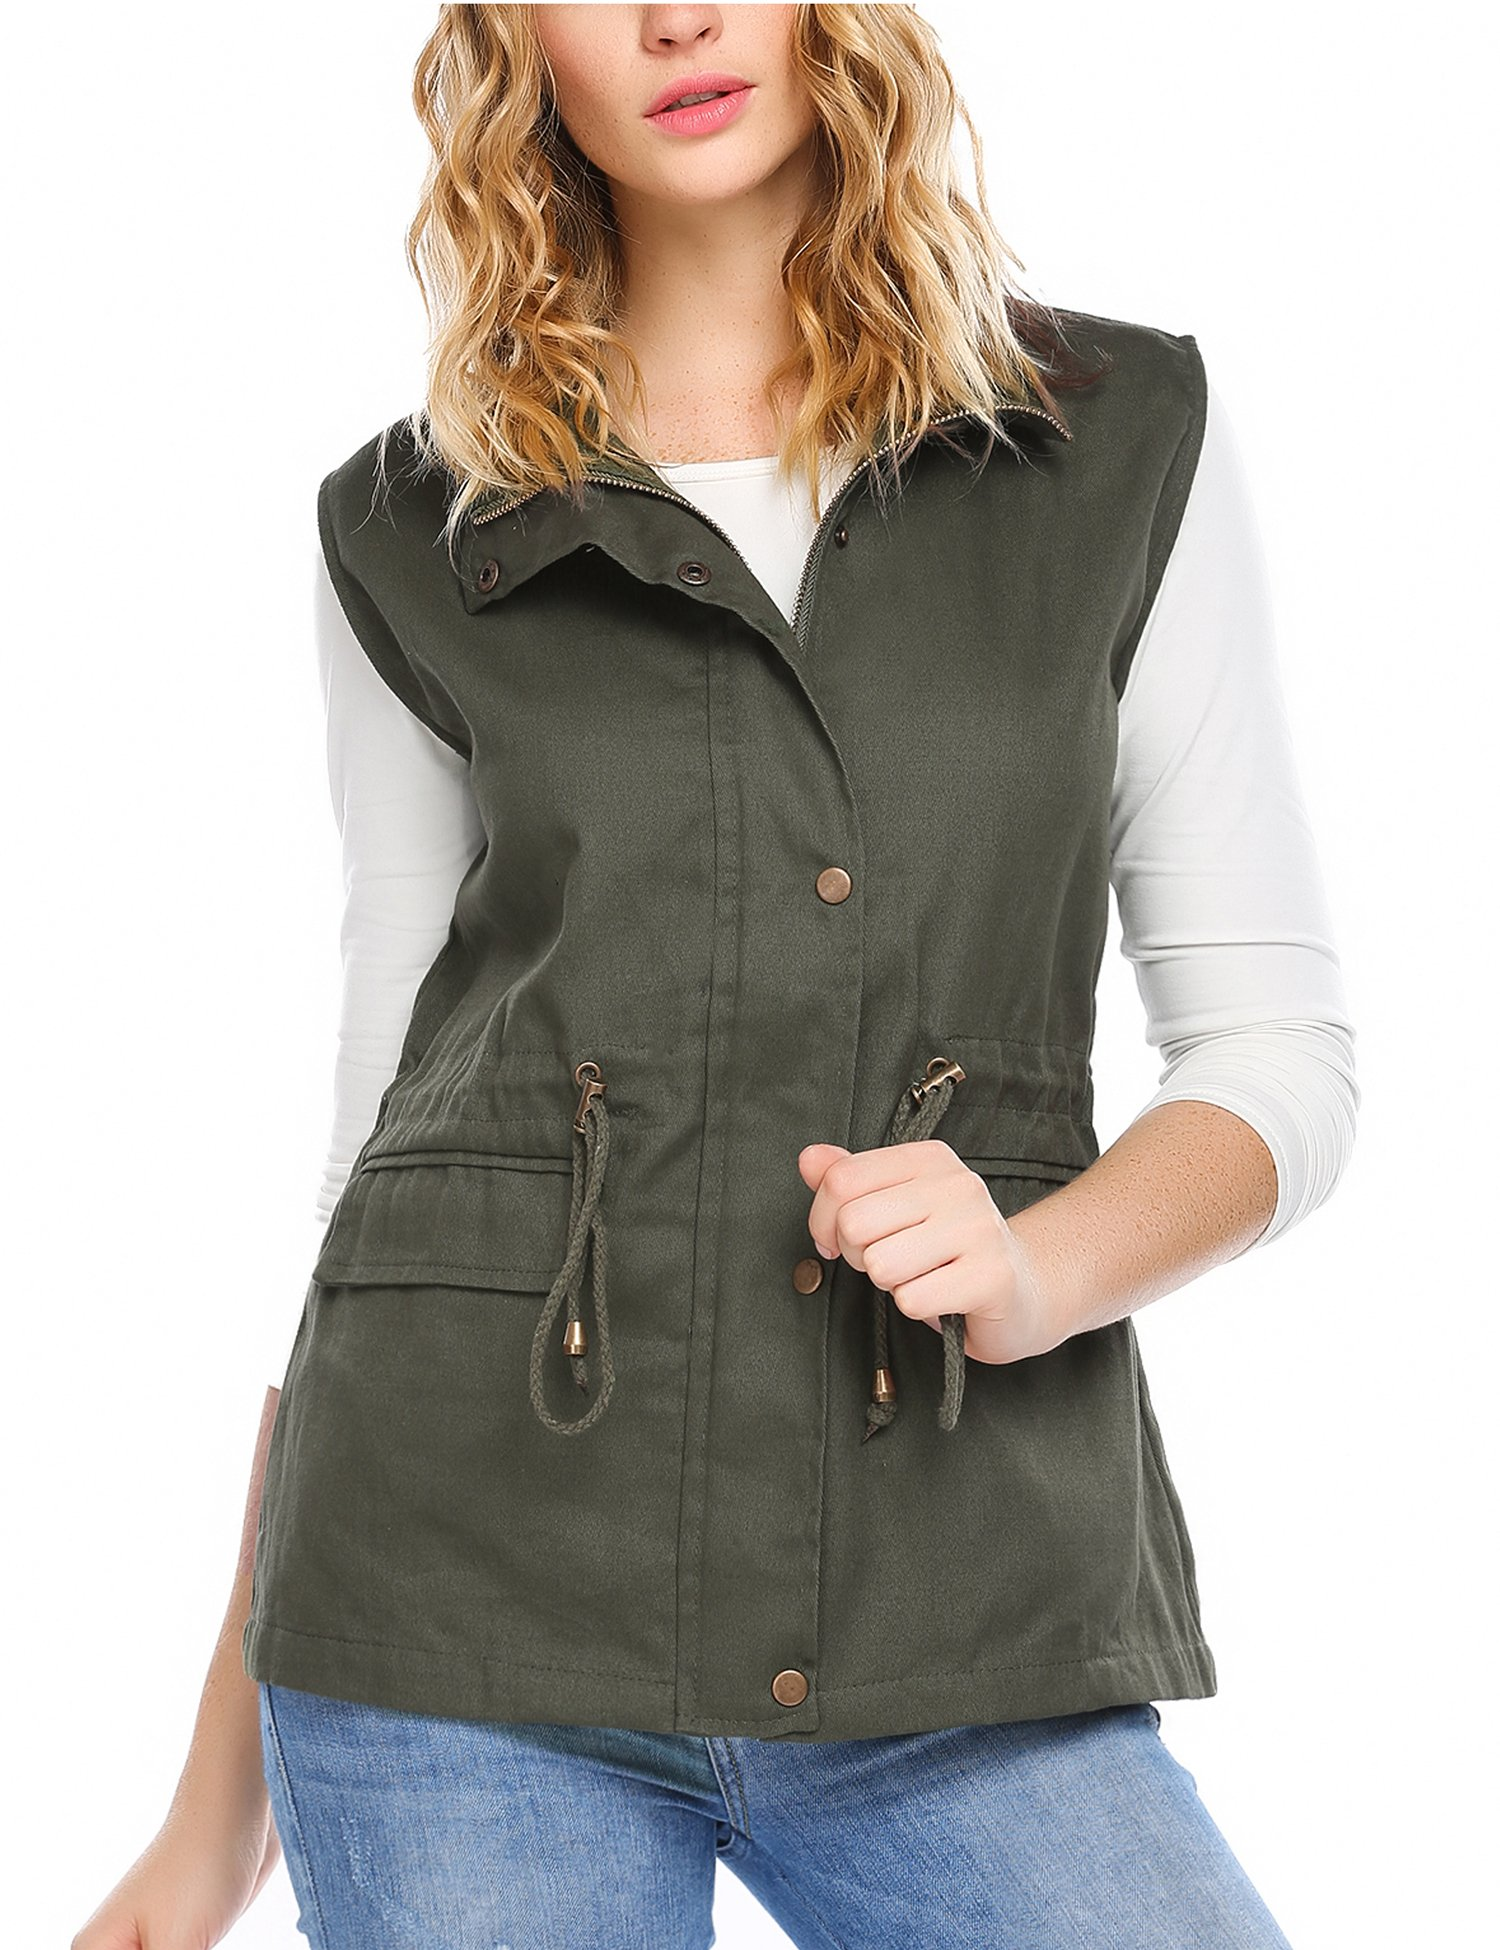 Zeagoo Womens Casual Work Utility Hunting Travels Sports Vest with Pockets, Army Green, XL